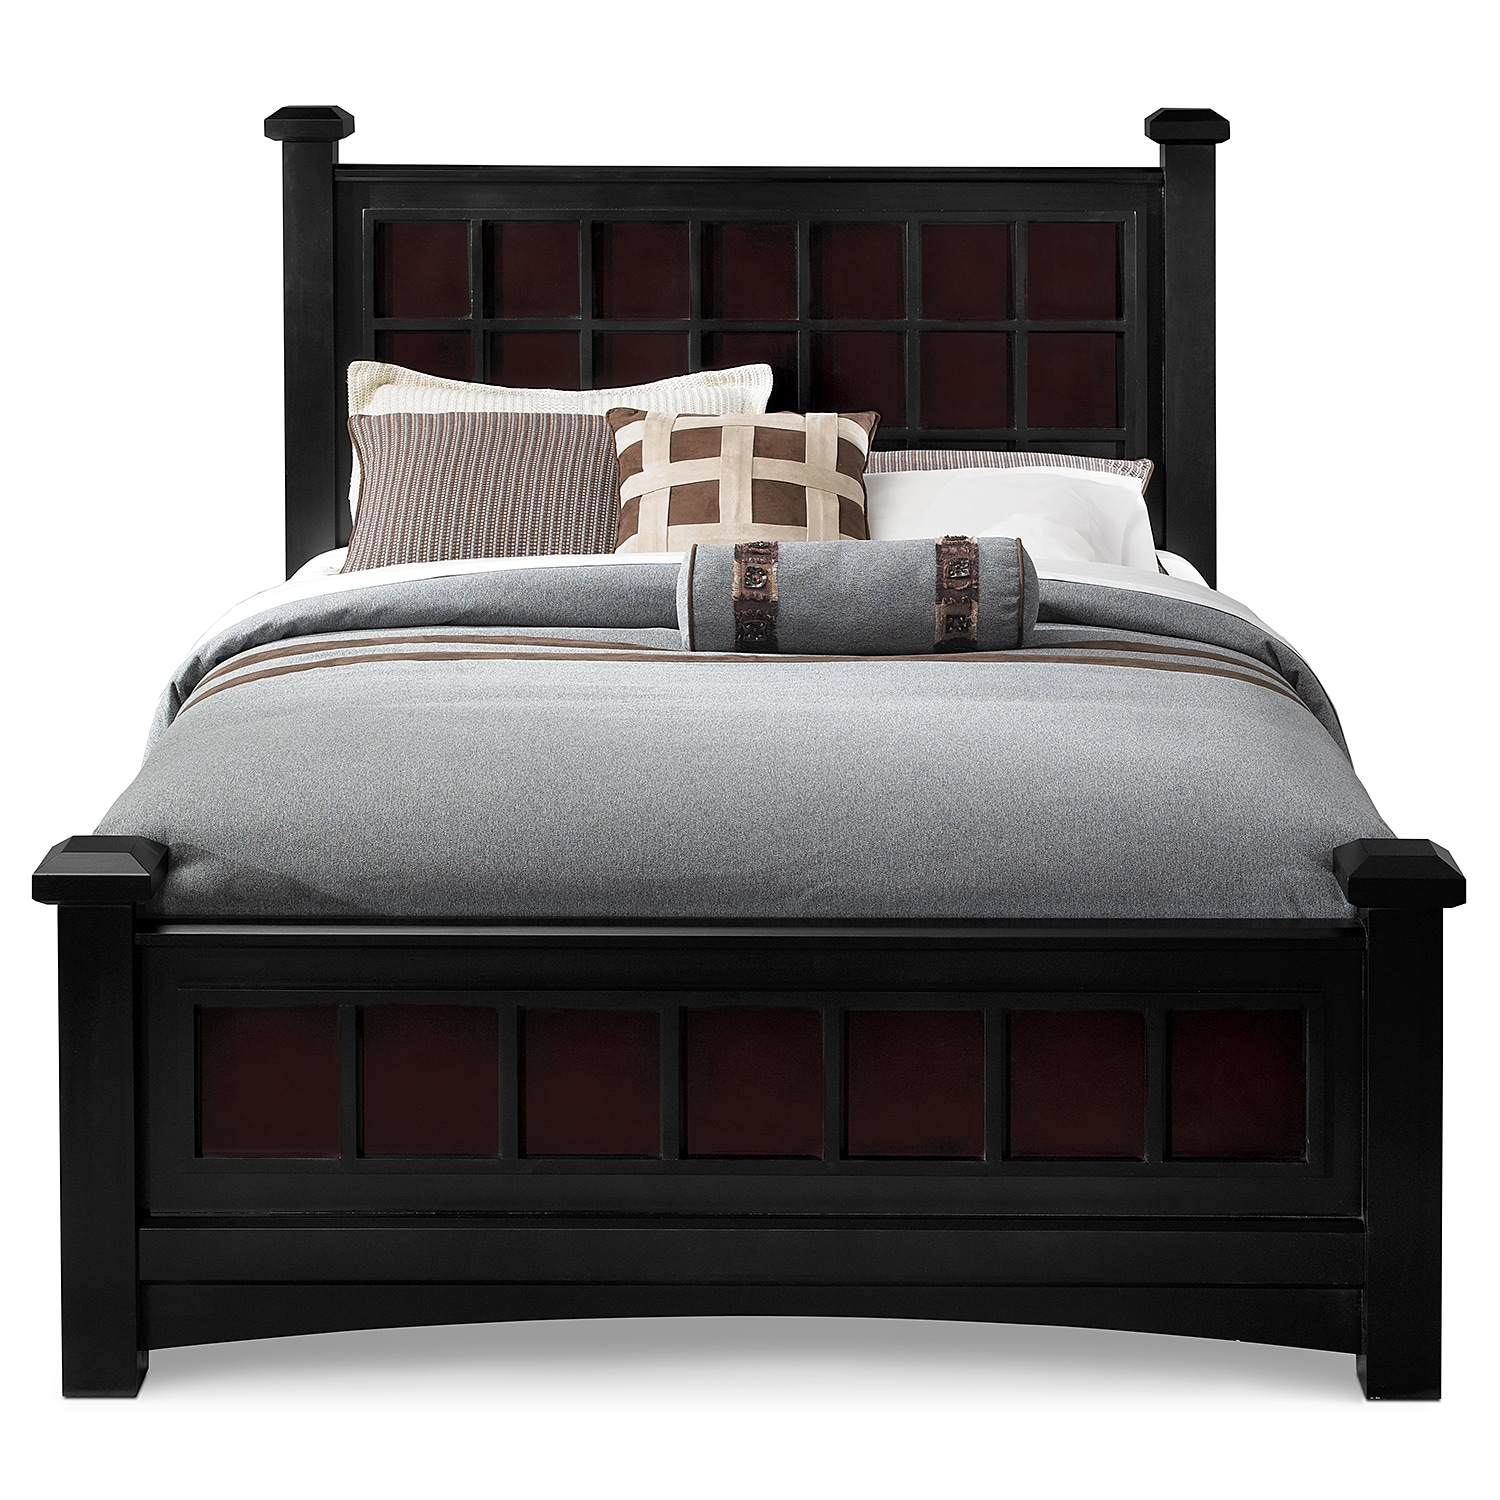 Winchester king bed black and burnished merlot value for Furniture and beds